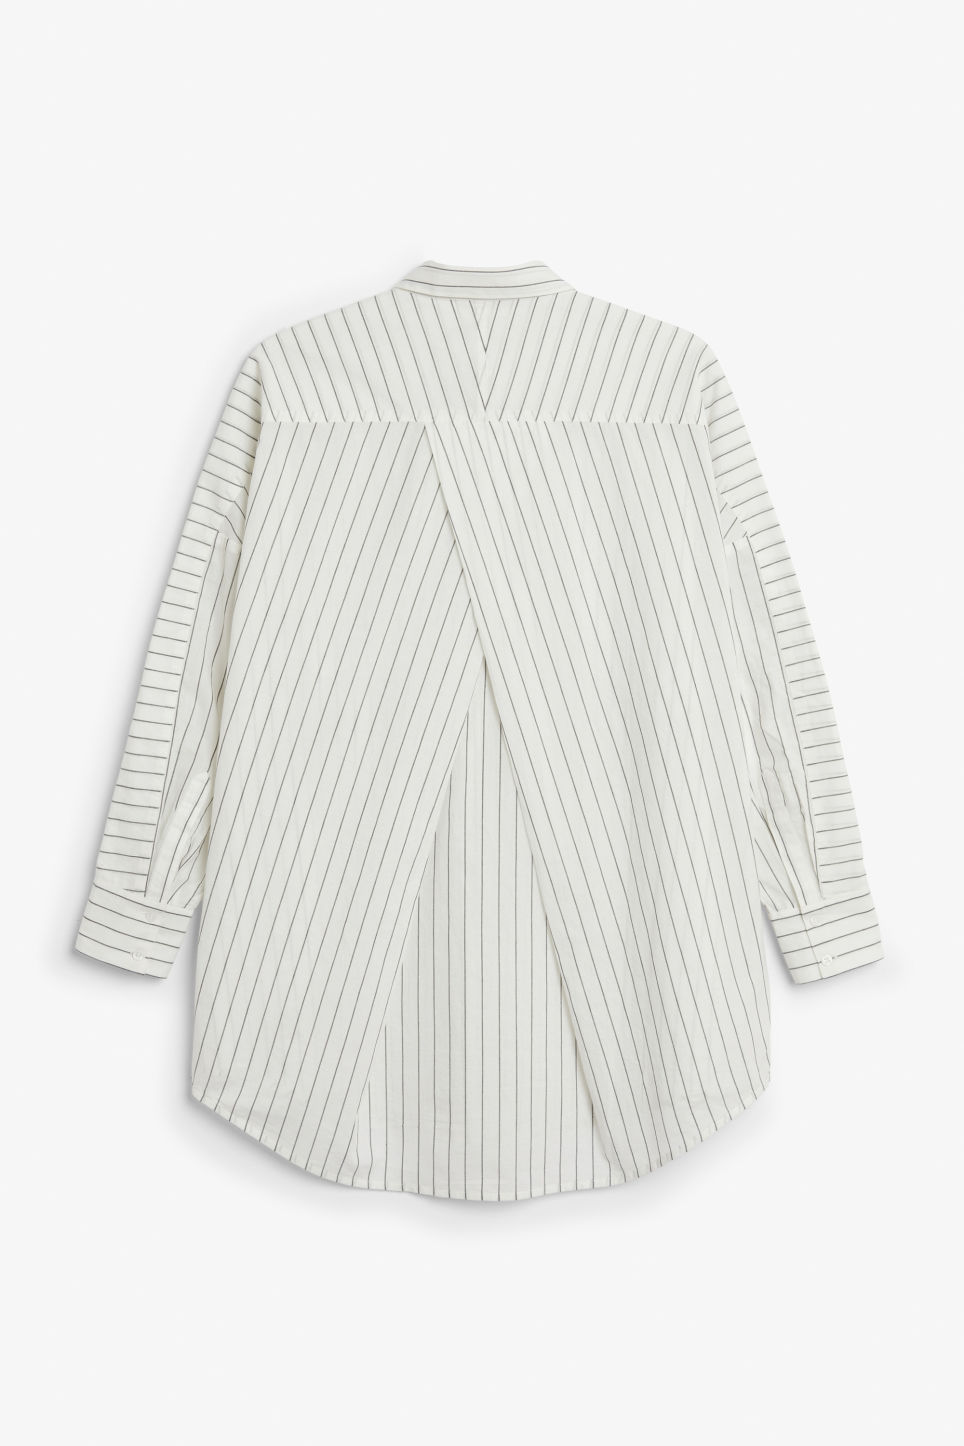 Back image of Monki oversized blouse in white